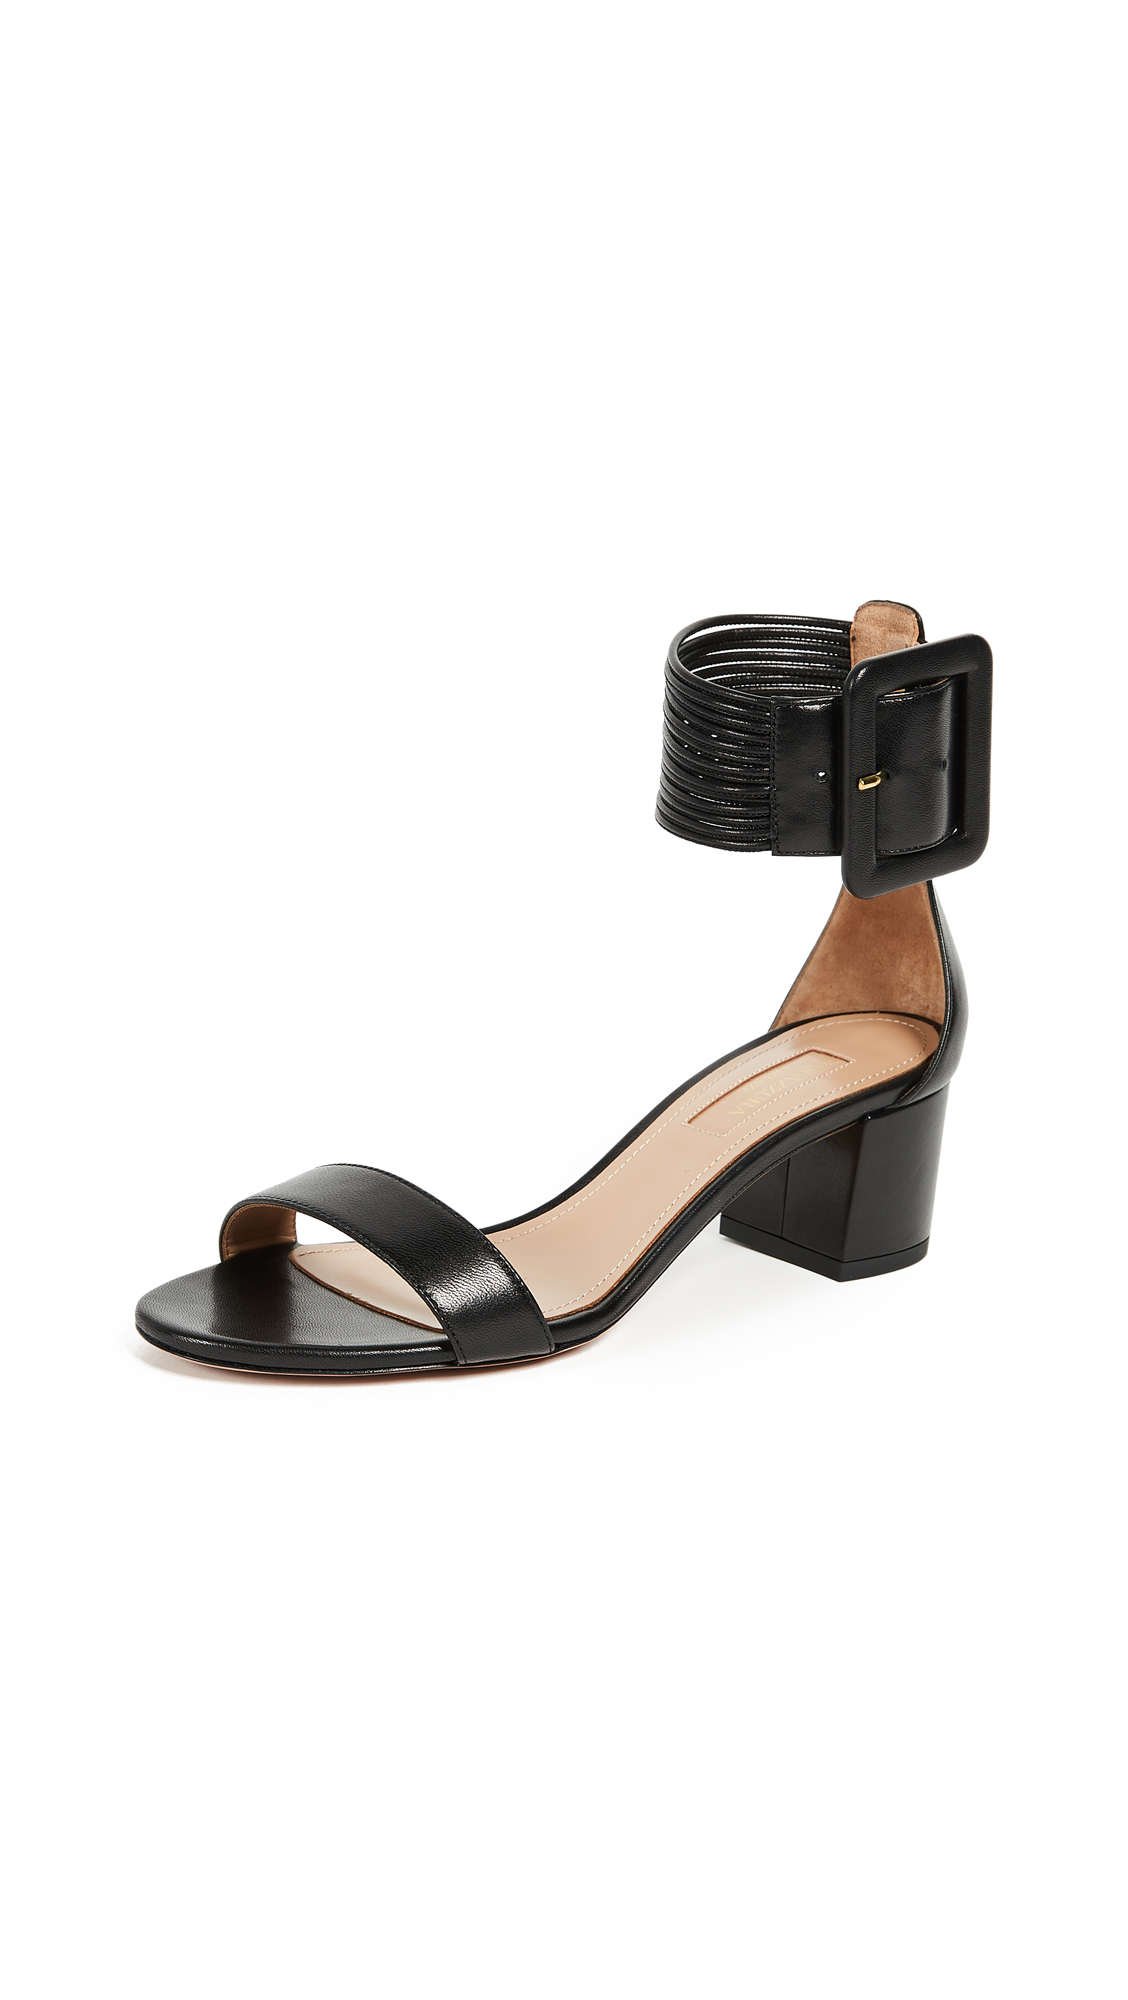 Aquazzura Casablanca 50 Sandals - Black